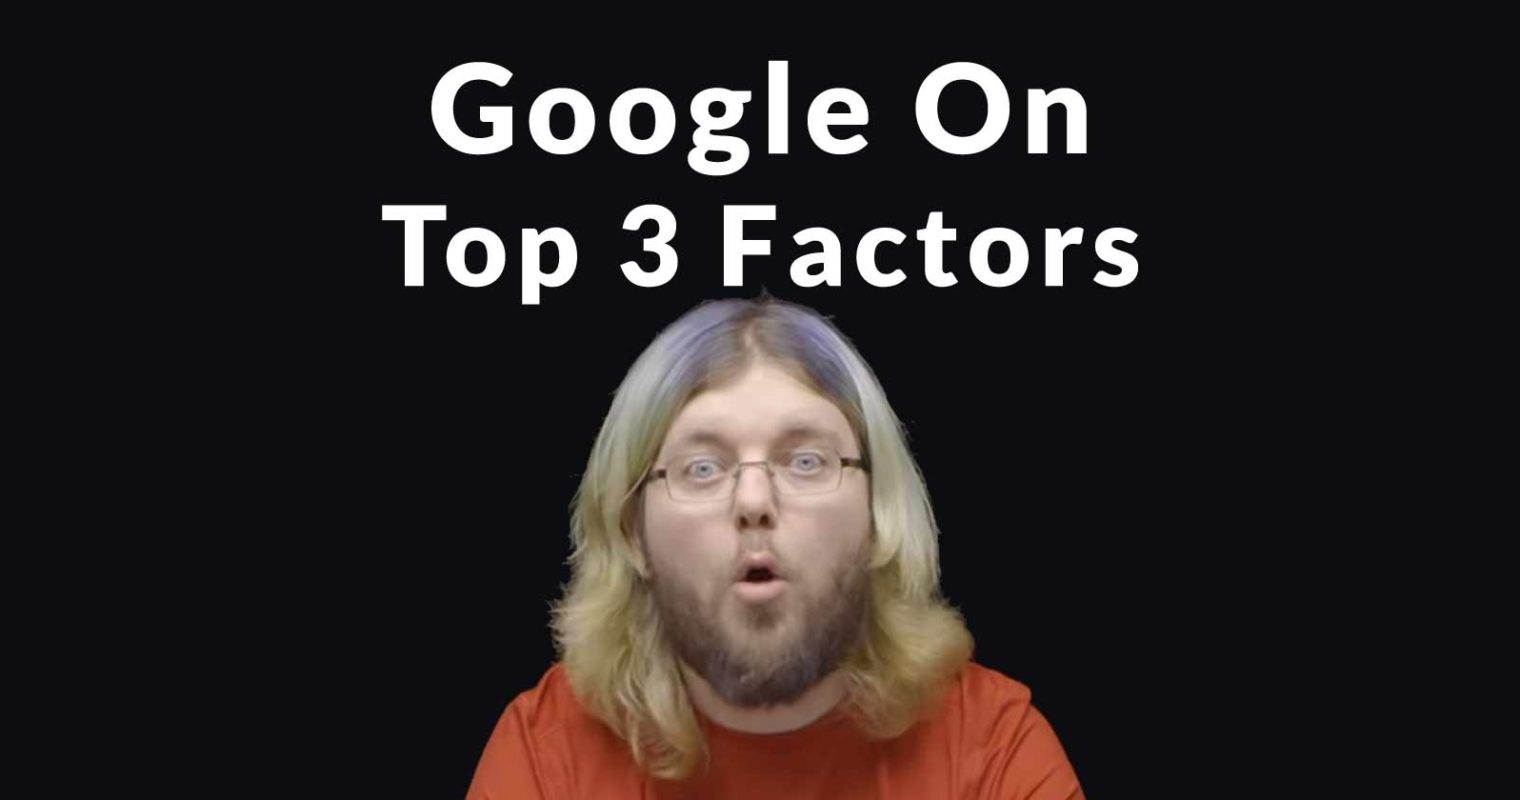 Google Shares Top 3 SEO Factors